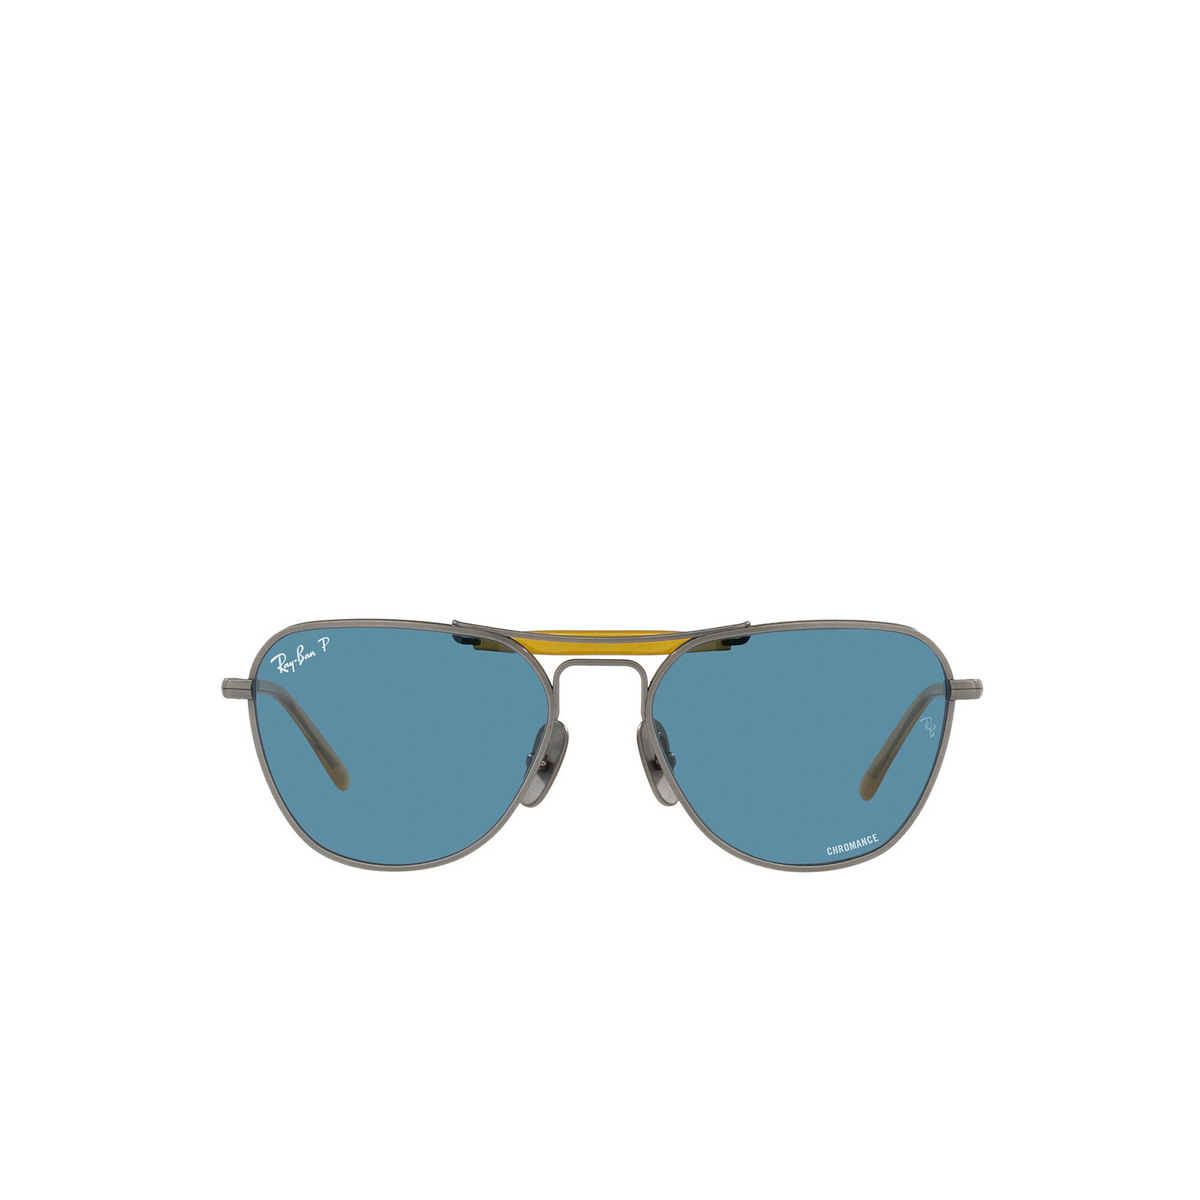 Ray-Ban® Irregular Sunglasses: RB8064 color Demi Gloss Pewter 9208S2 - front view.